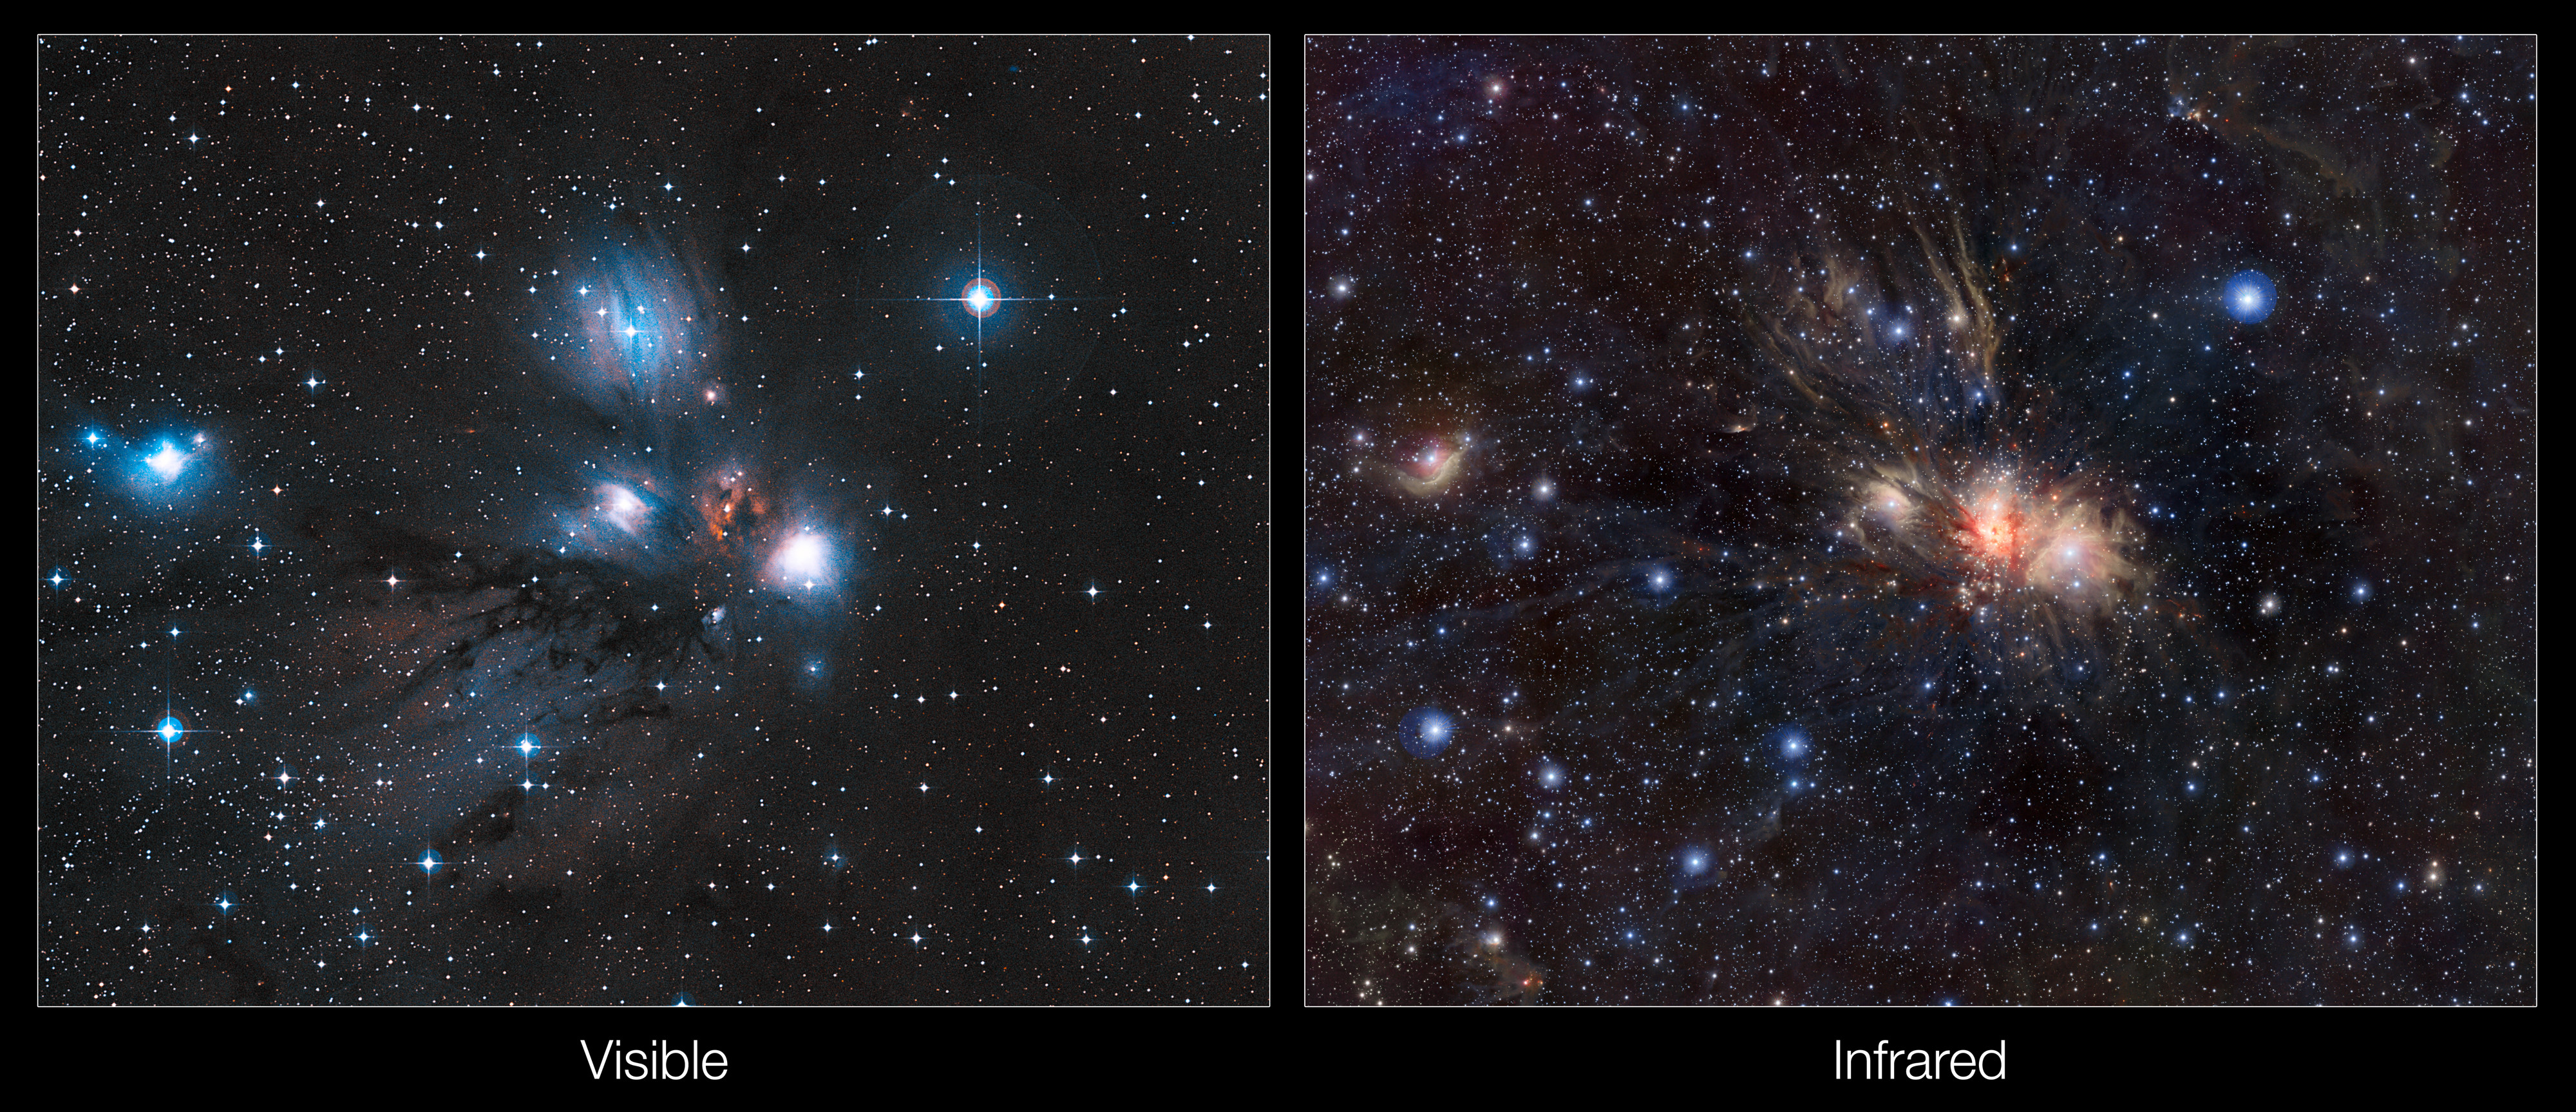 Infrared Visible Light Comparison View Of The Helix Nebula: Infrared/visible Light Comparison Of Views Of A Stellar